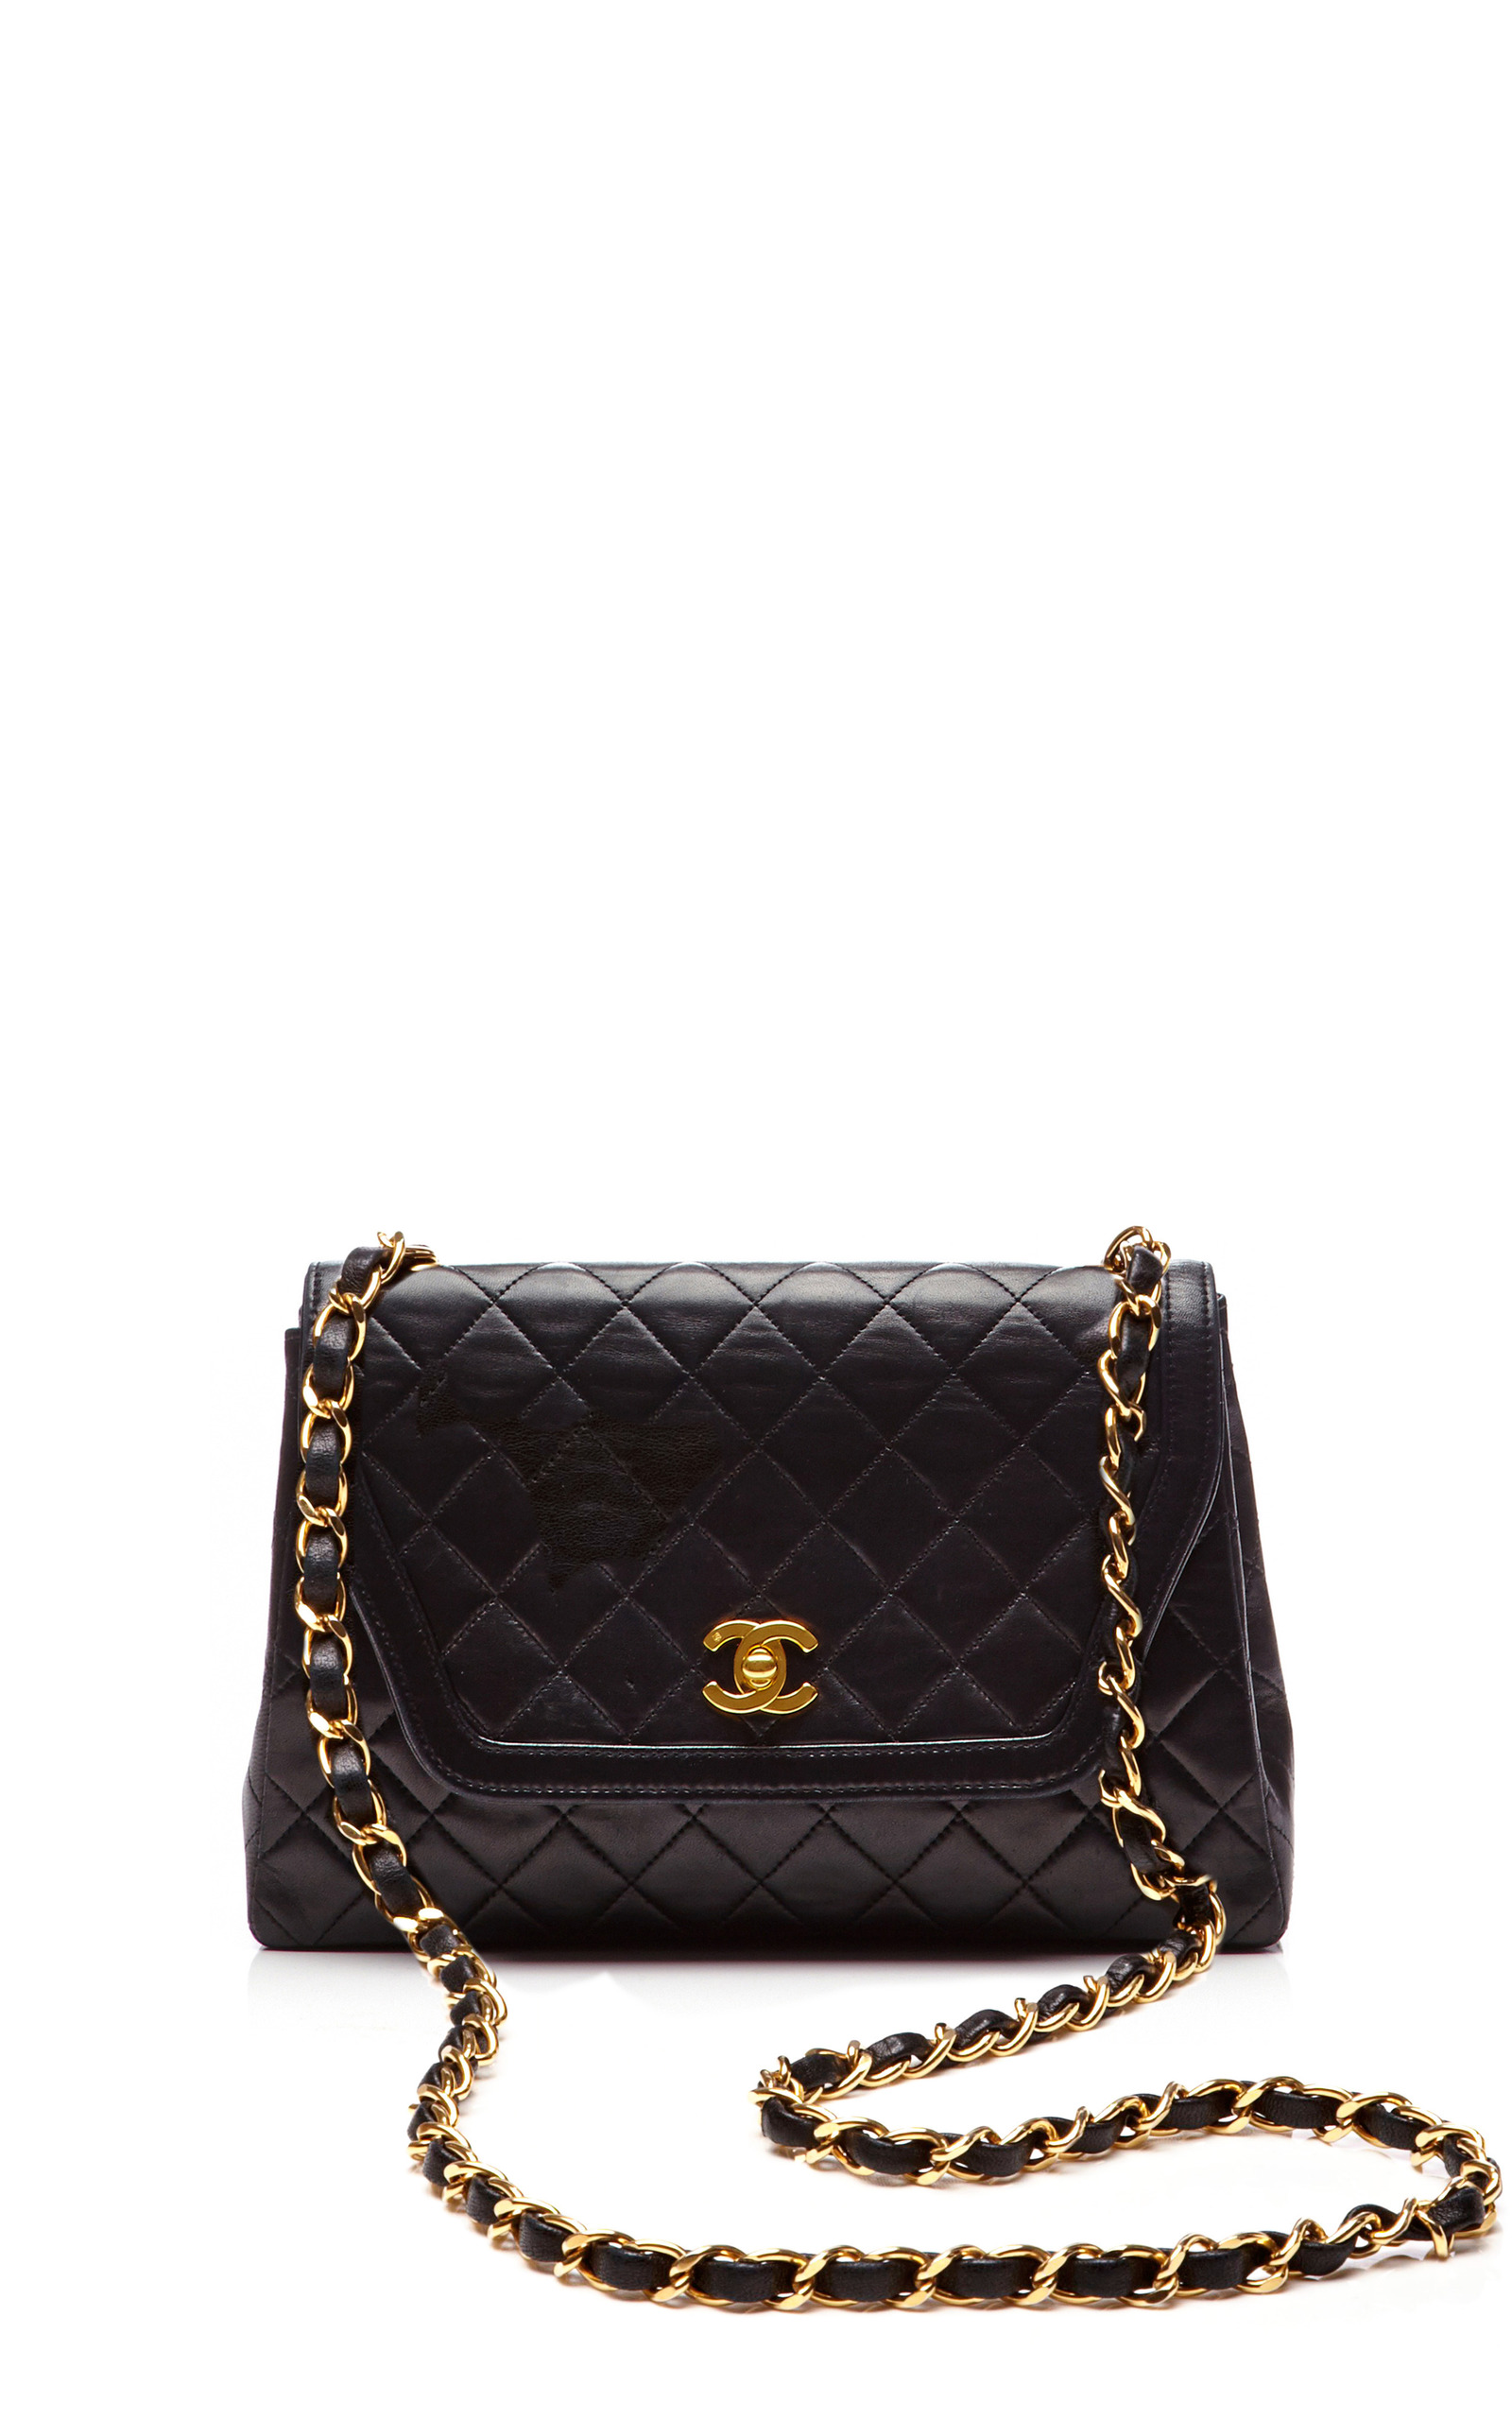 e64cbbca7e6e ... Quilted Lambskin Trapezoid Bag from What Goes Around Comes Around.  CLOSE. Loading